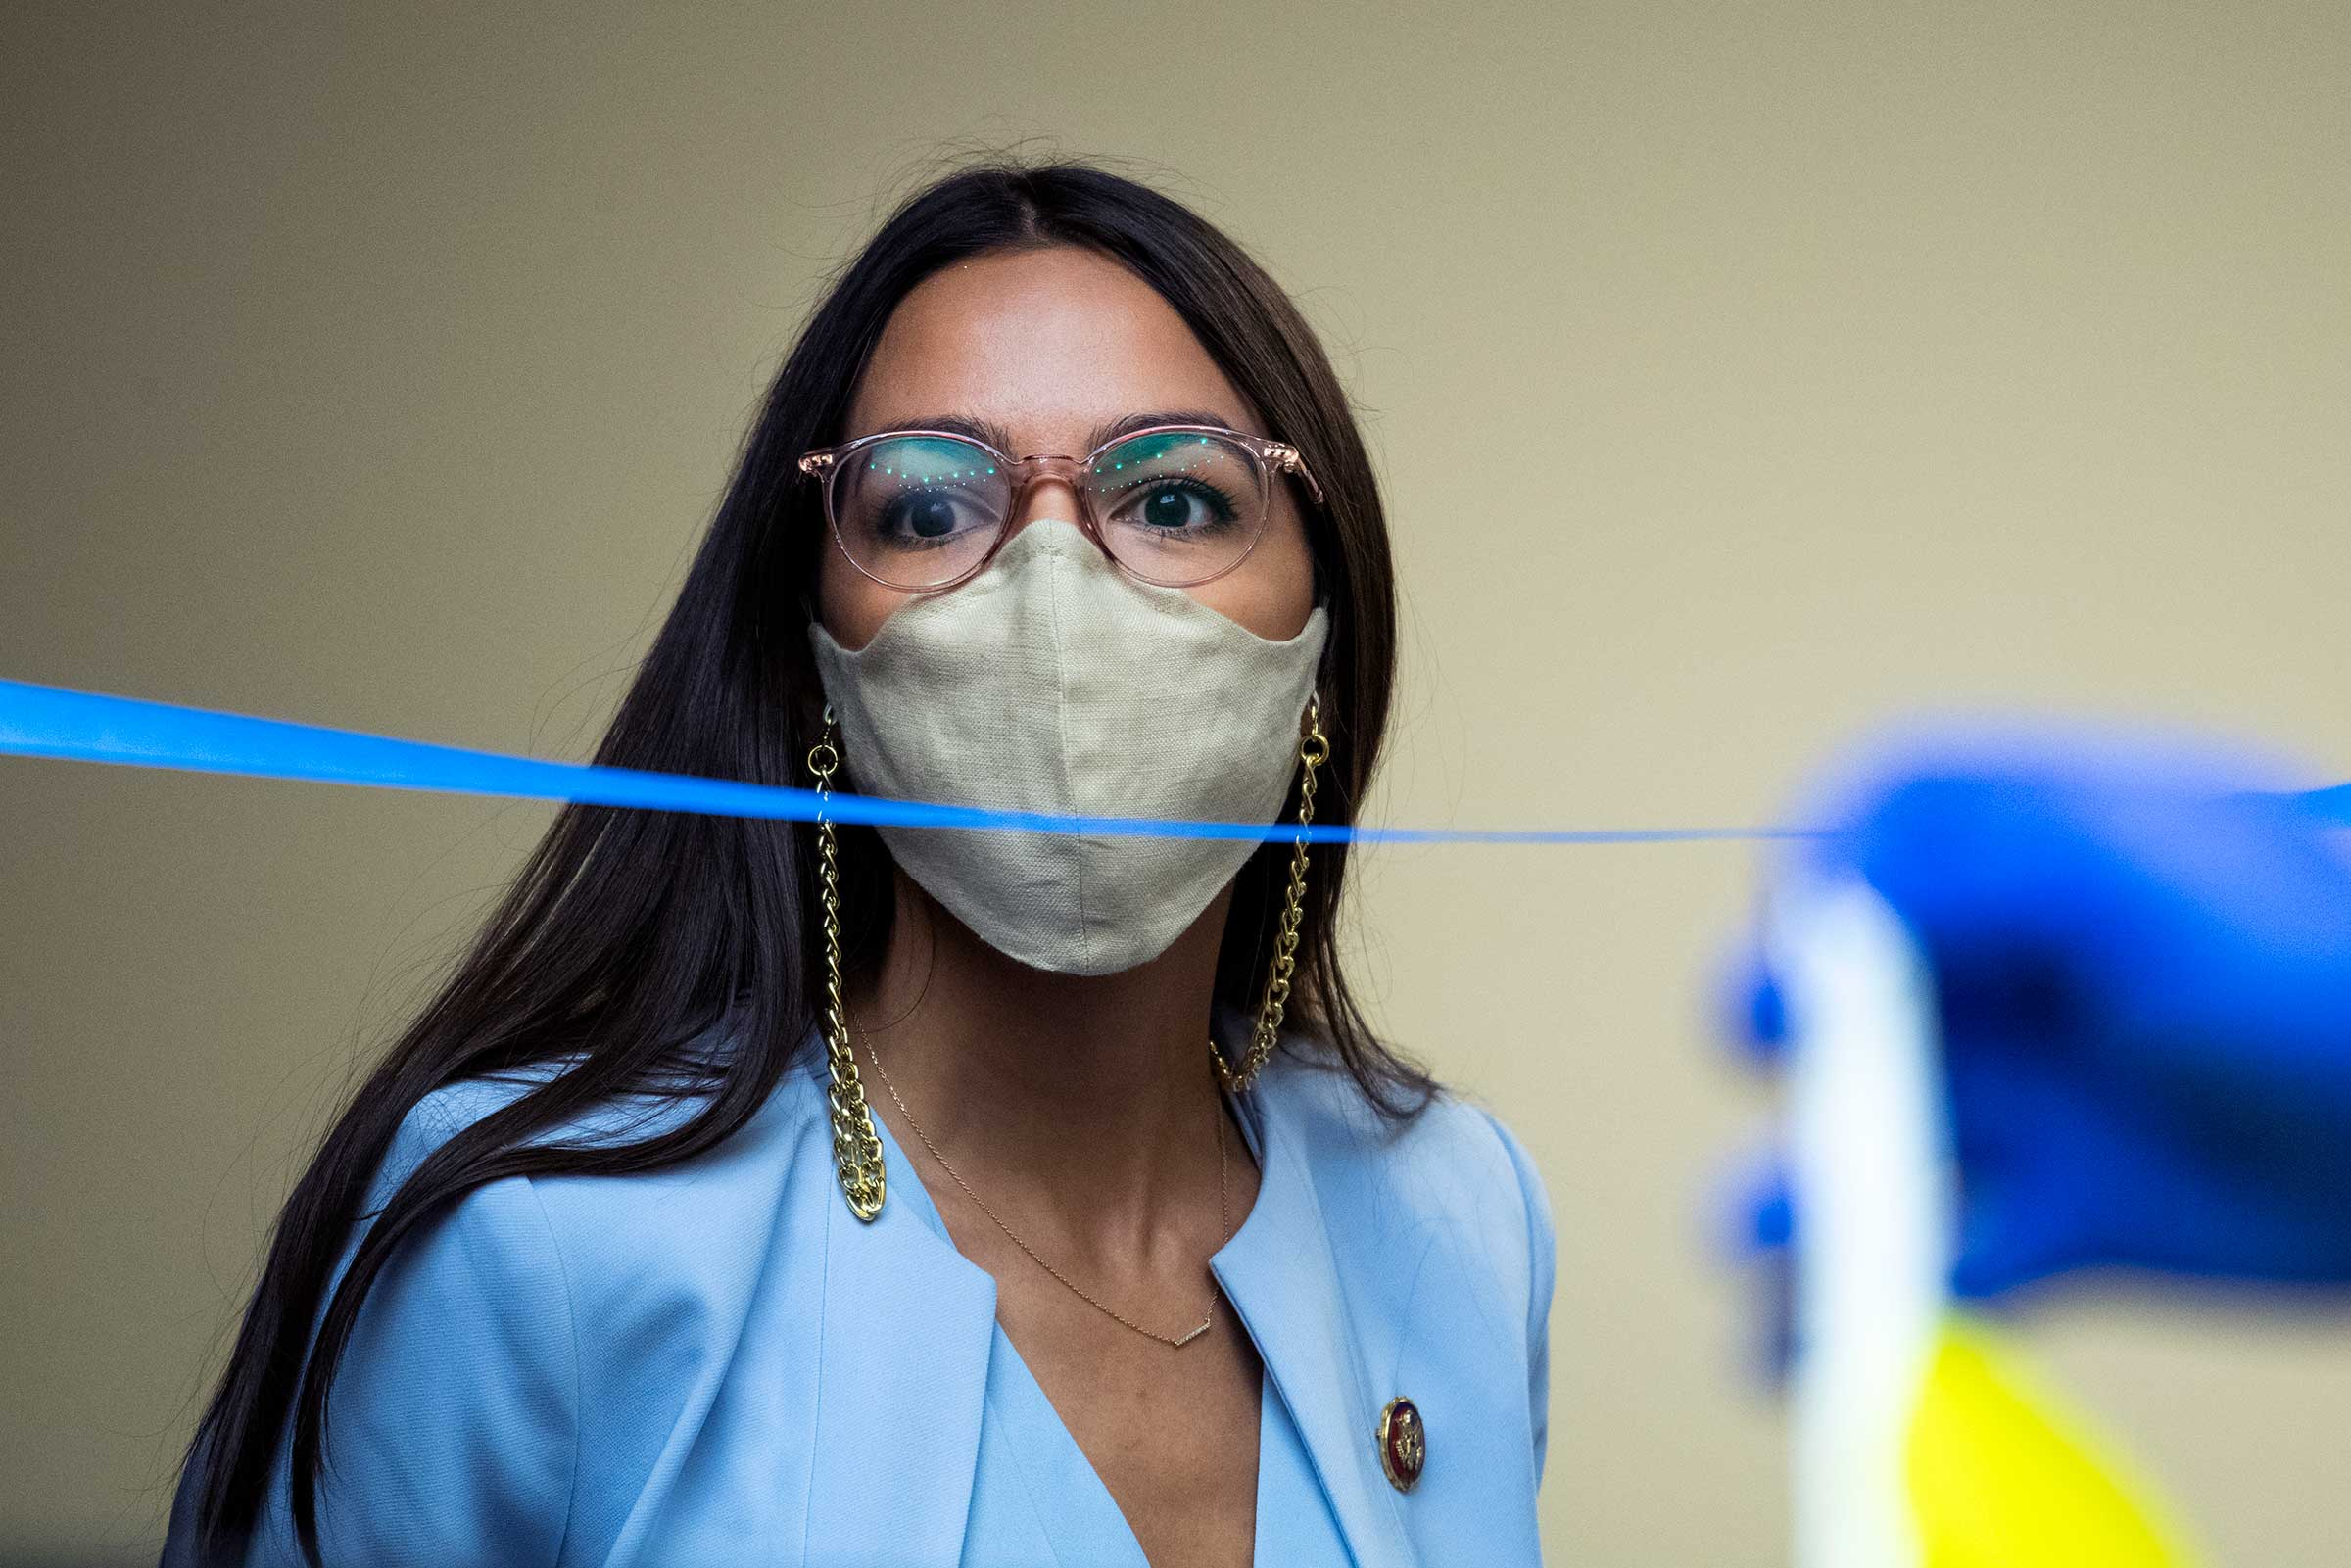 Alexandria Ocasio-Cortez, a Latinx woman with long, black hair, and wearing glasses, has a gray mask over her face